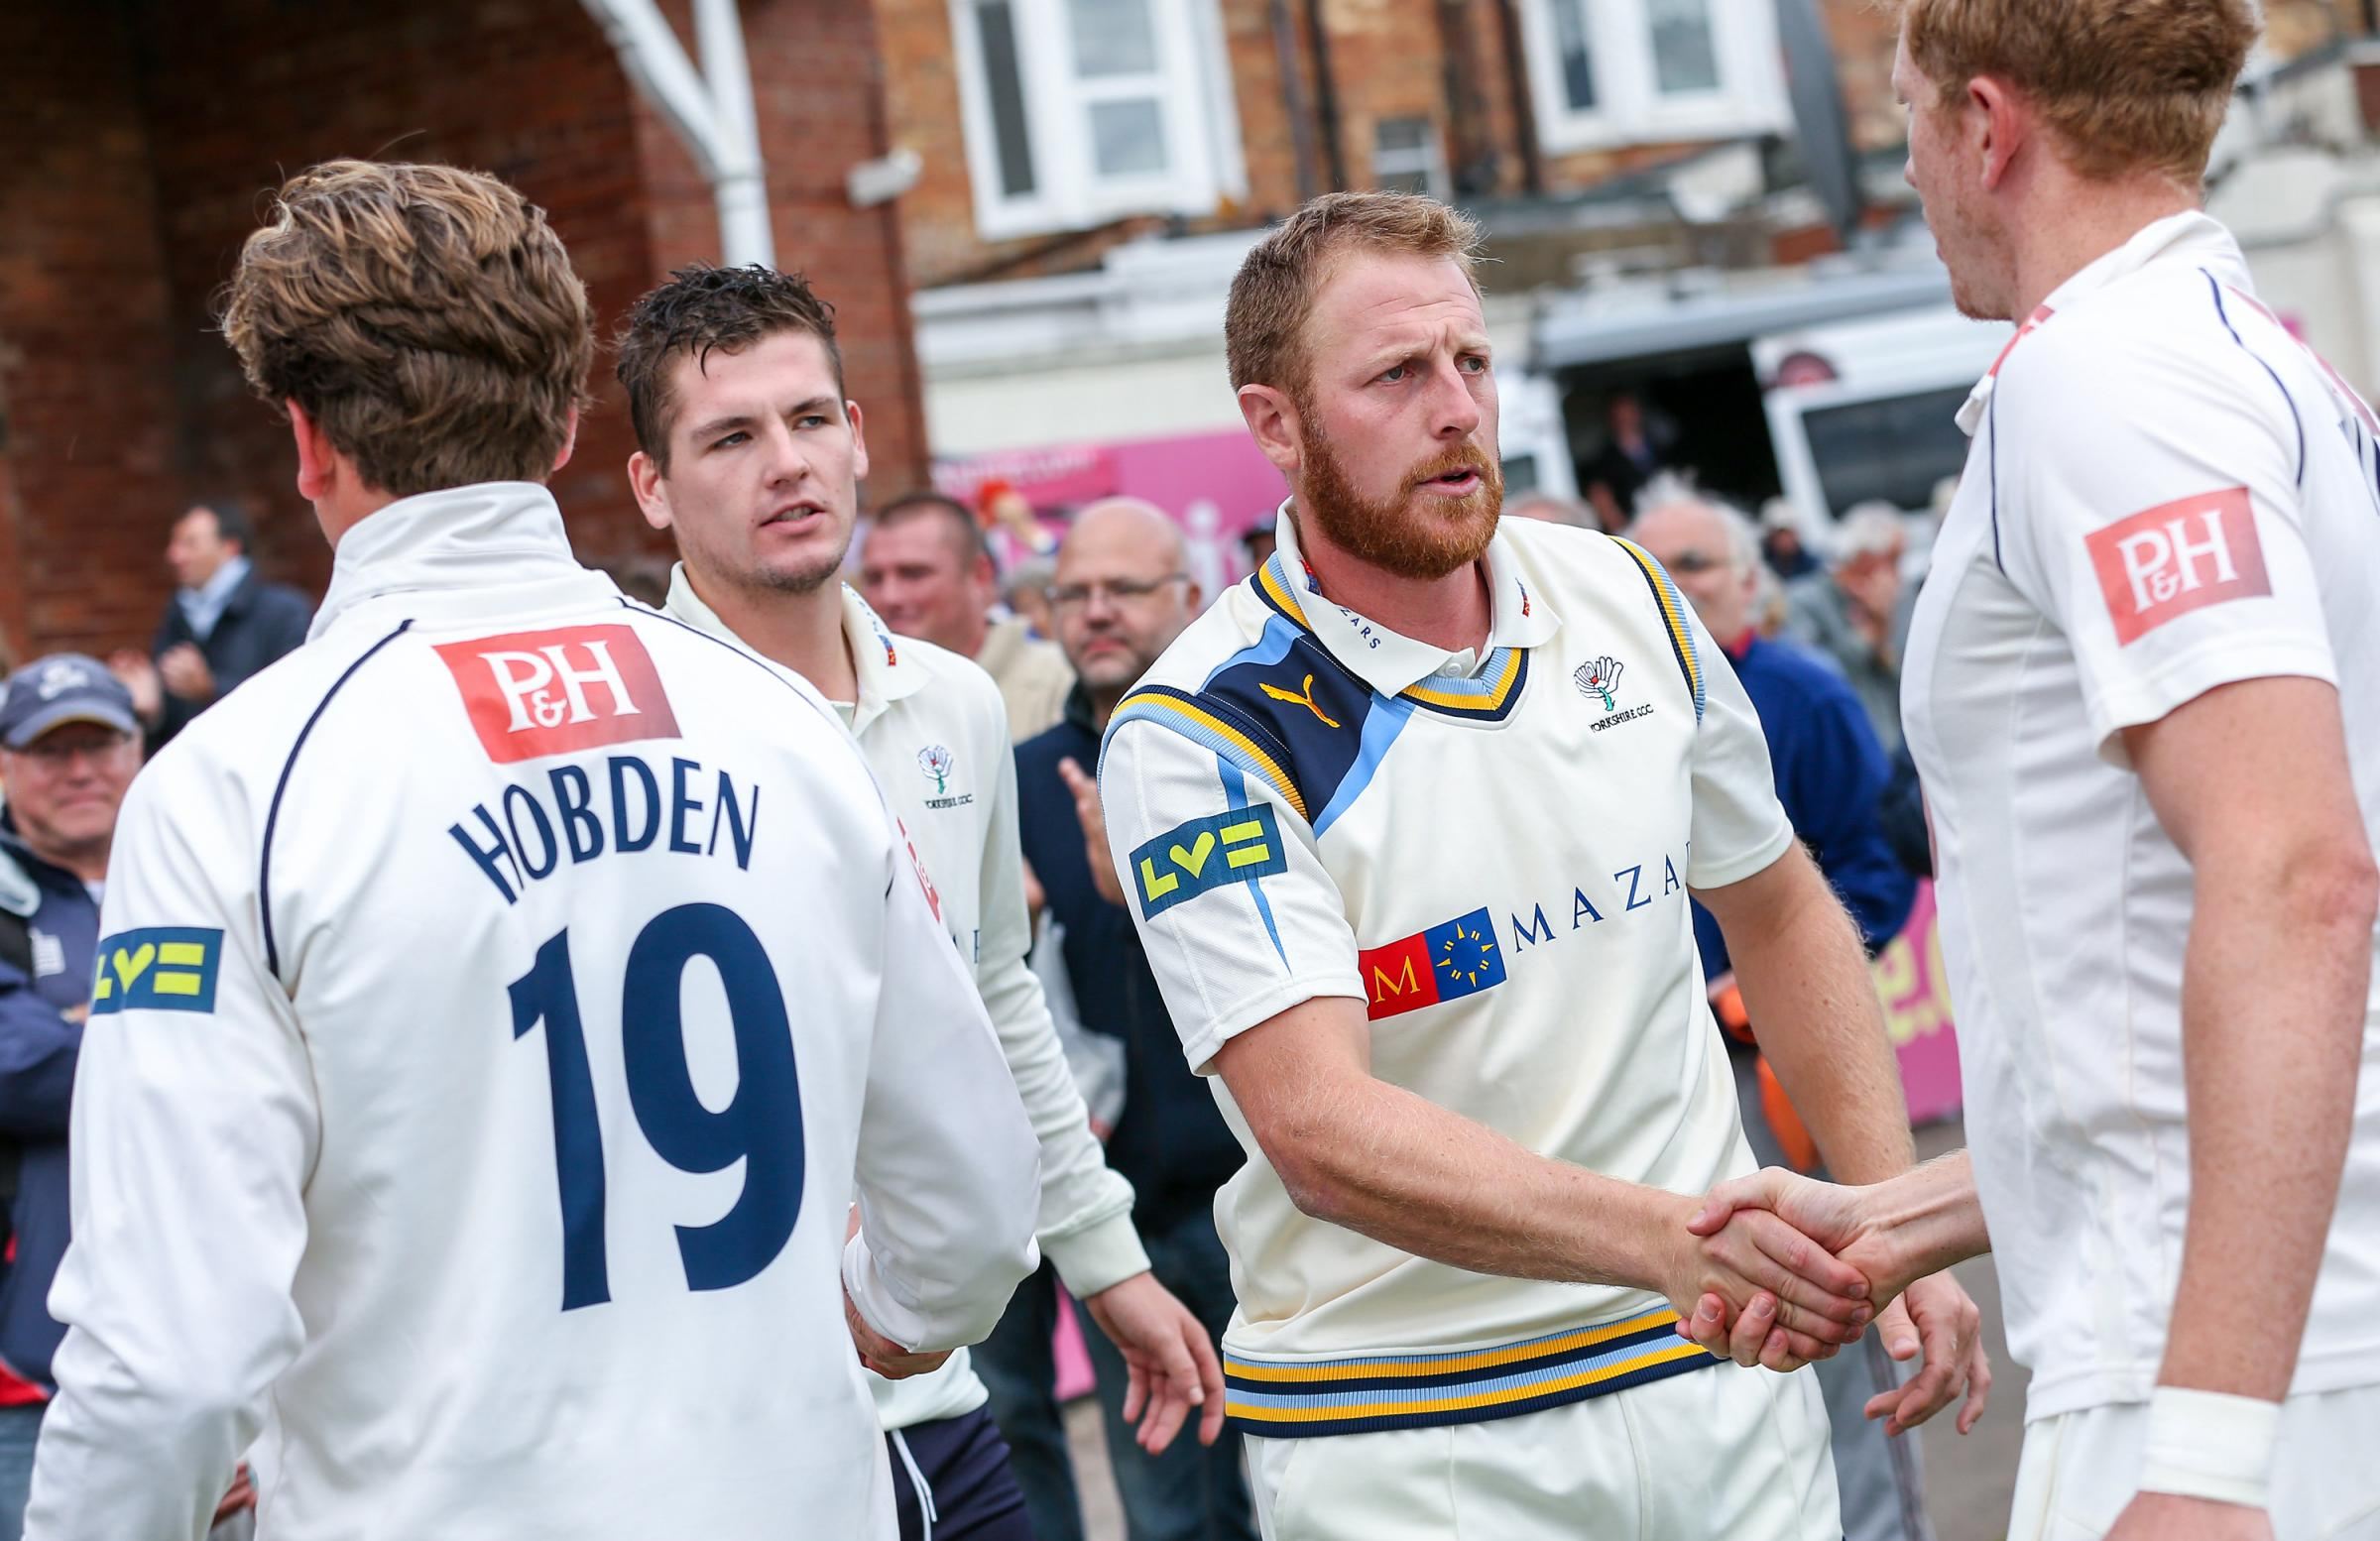 Yorkshire's Andrew Gale is convinced the club can record a trophy double in the County Championship and Royal London One-day Cup. Picture: Alex Whitehead/SWpix.com